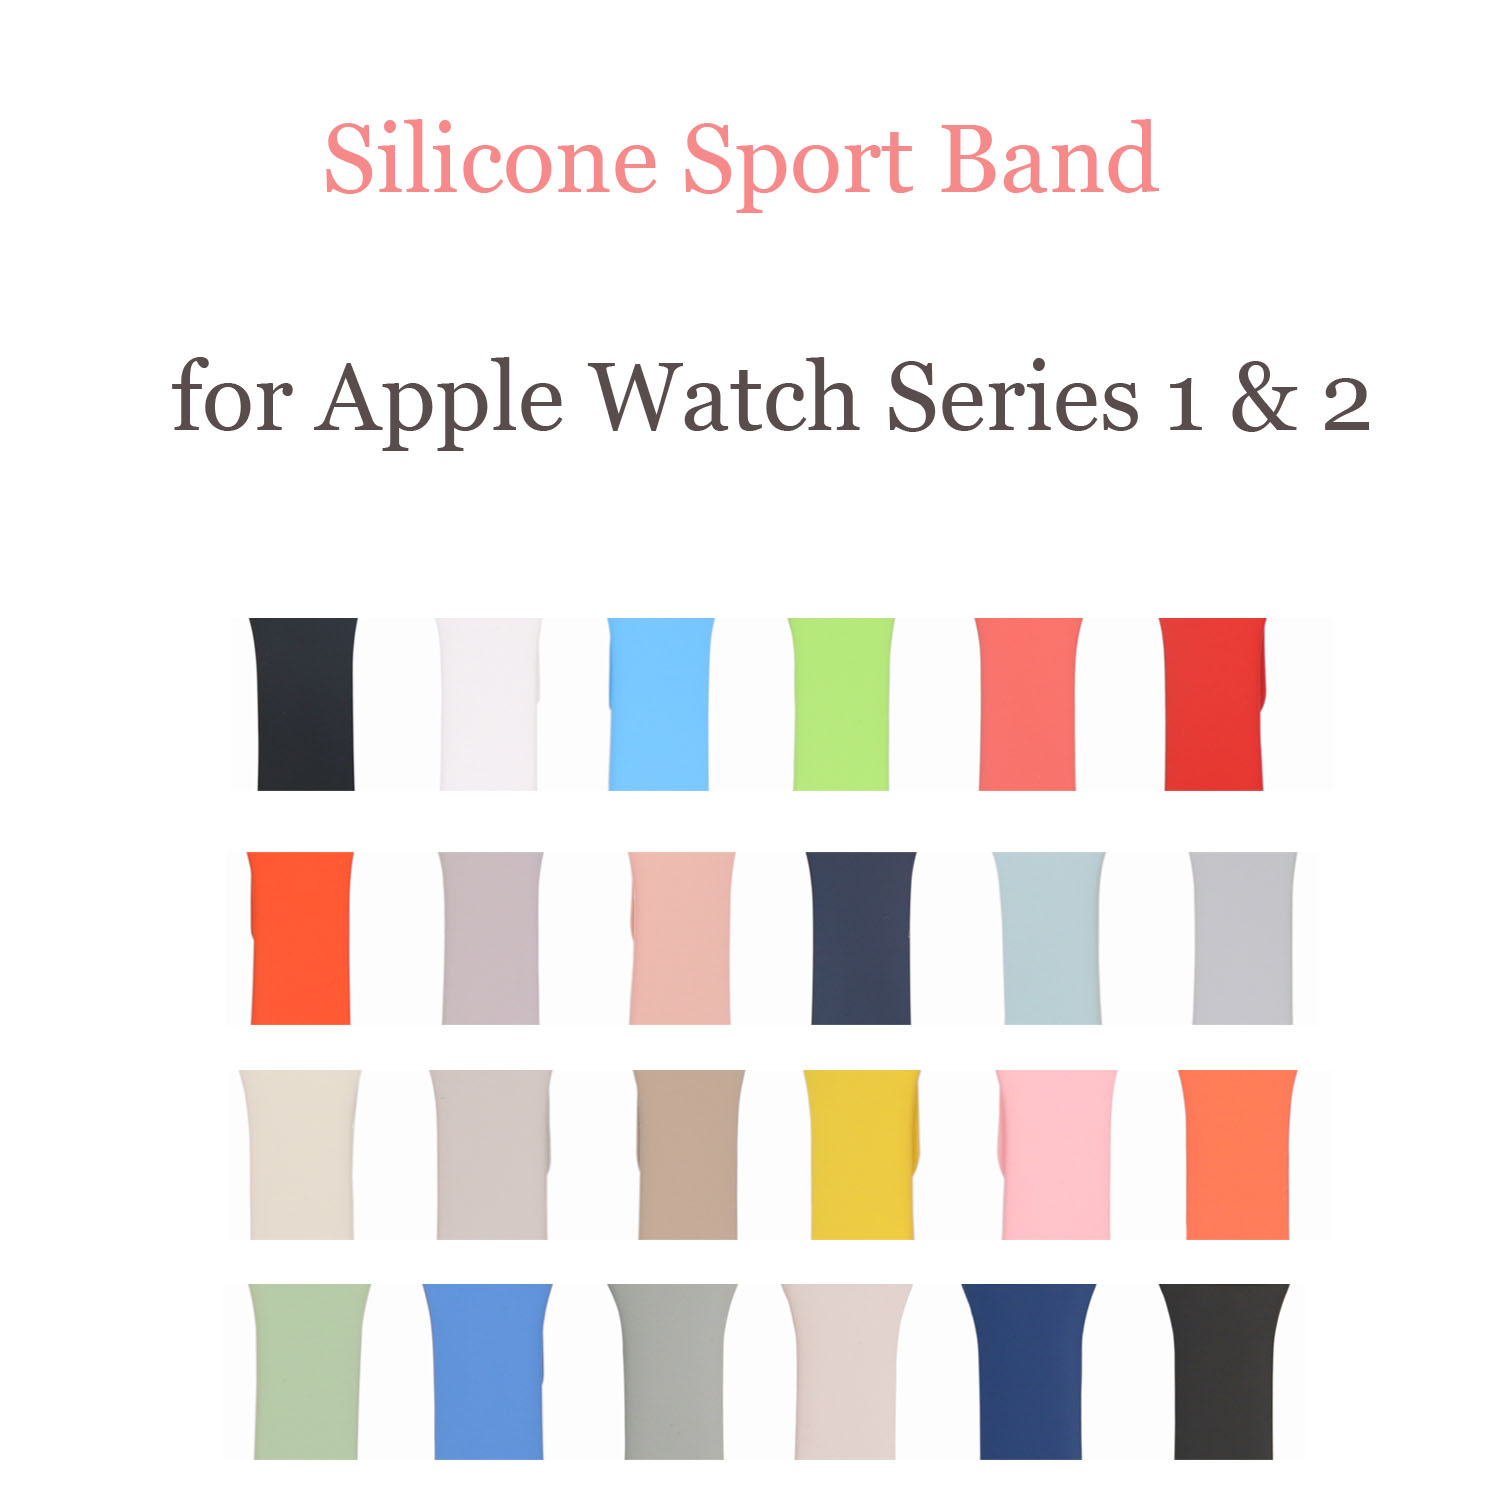 22 Colors Sport Silicone Band for Apple Watch Band Series 1 and Series 2 Silicone Strap Bracelet for iWatch 38mm 42mm Watchband r077 20ft double layer air inflatable arch tent inflatable event arch inflatable arch inflatable start finish line arch